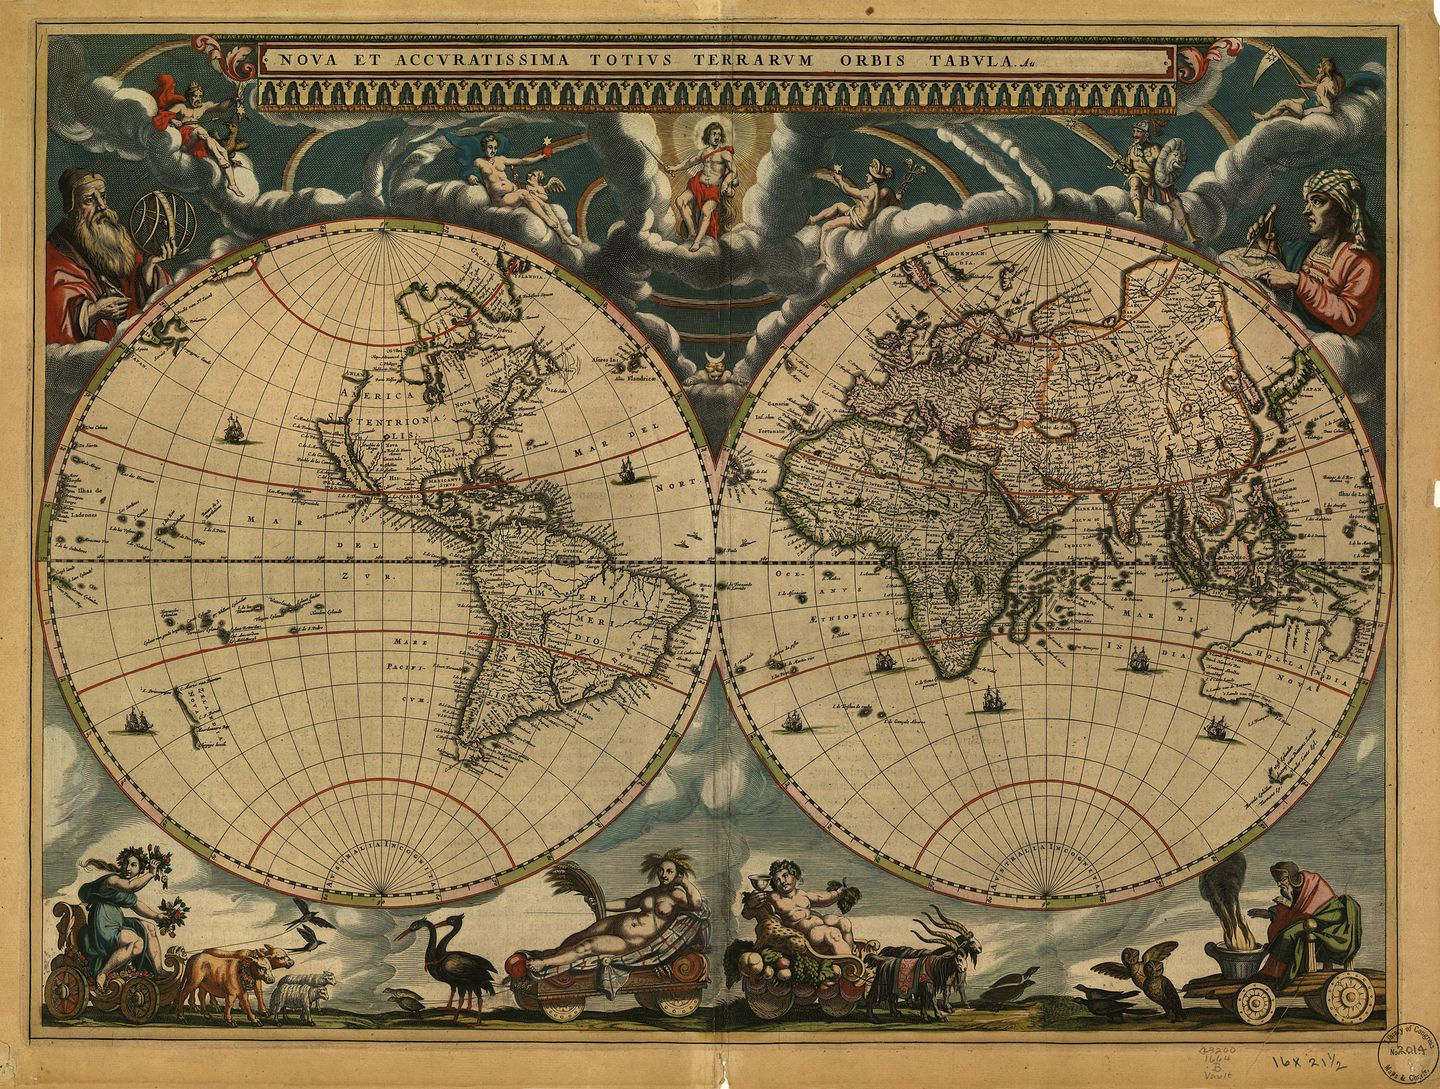 A History of the World in 12 Maps' by Jerry Brotton - The ... on usa sales territory maps, literature review maps, types of maps, benefits of maps, diagrams of maps, development of maps, basic features of topographic maps, a collection of maps, activities of maps, photography of maps,